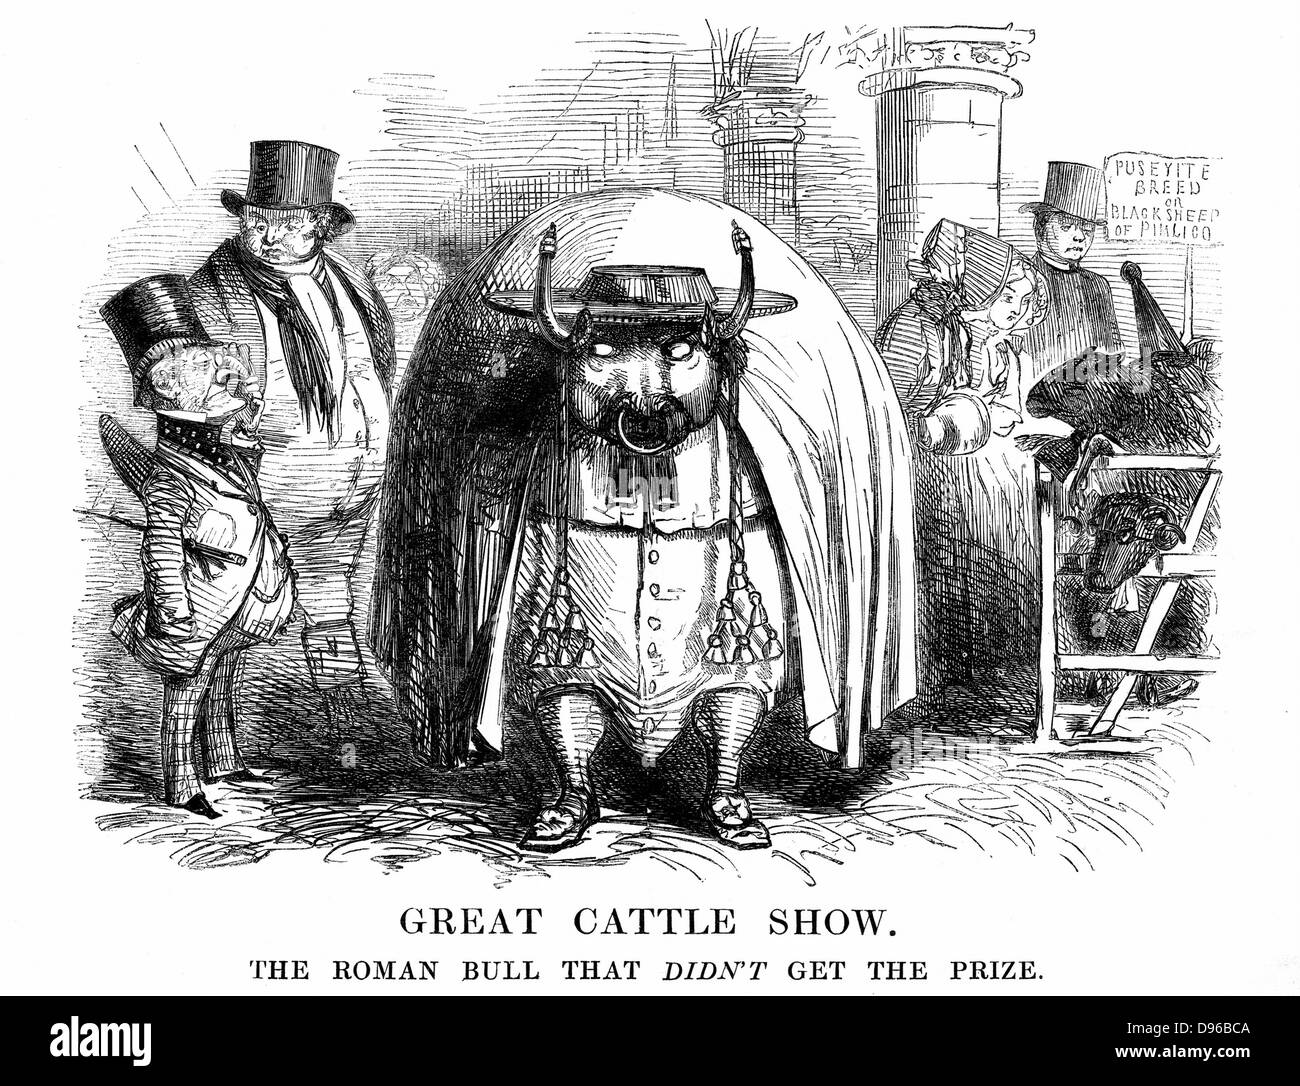 Great Cattle Show'. The Roman Bull that didn't get the prize. Mr Punch and John Bull viewing the Bull (Papal - Stock Image